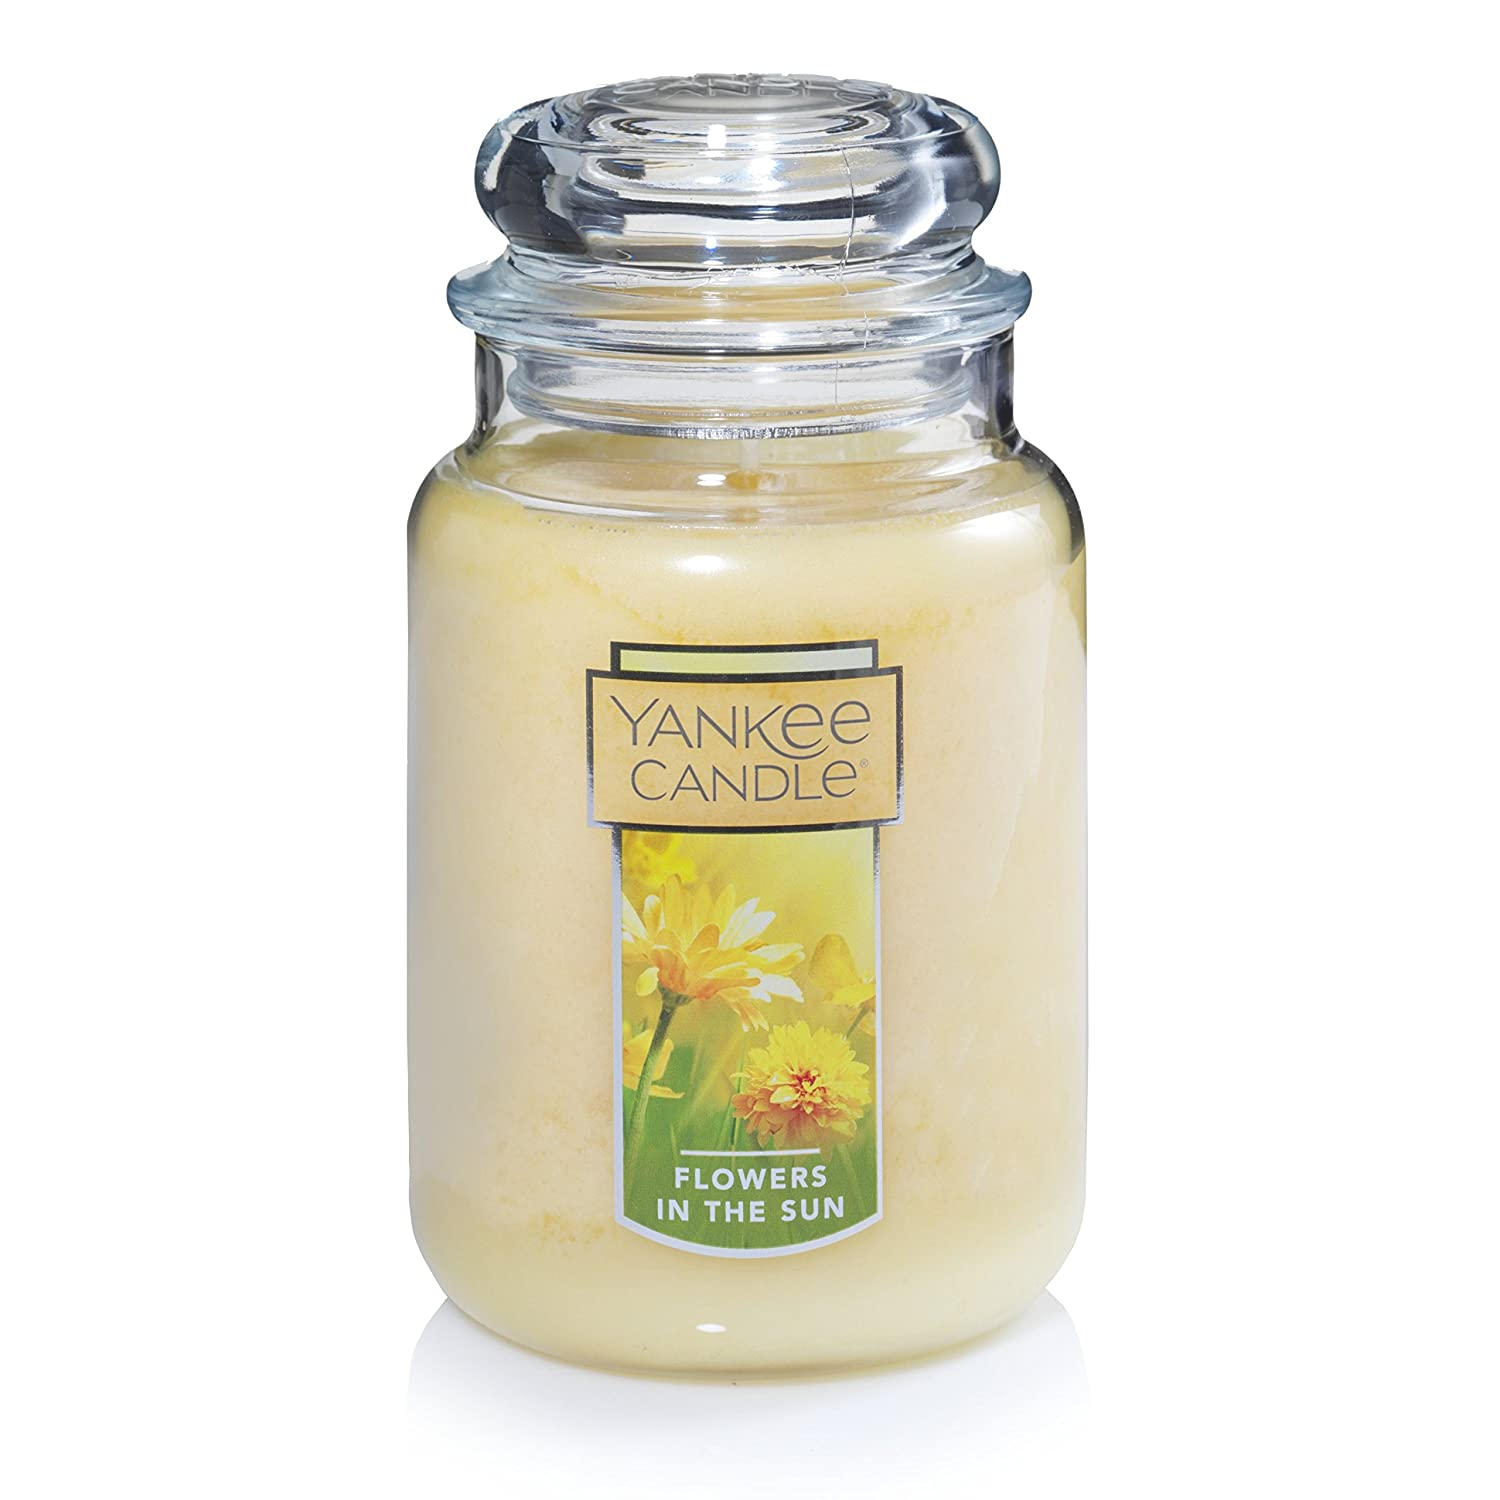 Yankee Candle Large Jar Candle Flowers in the Sun